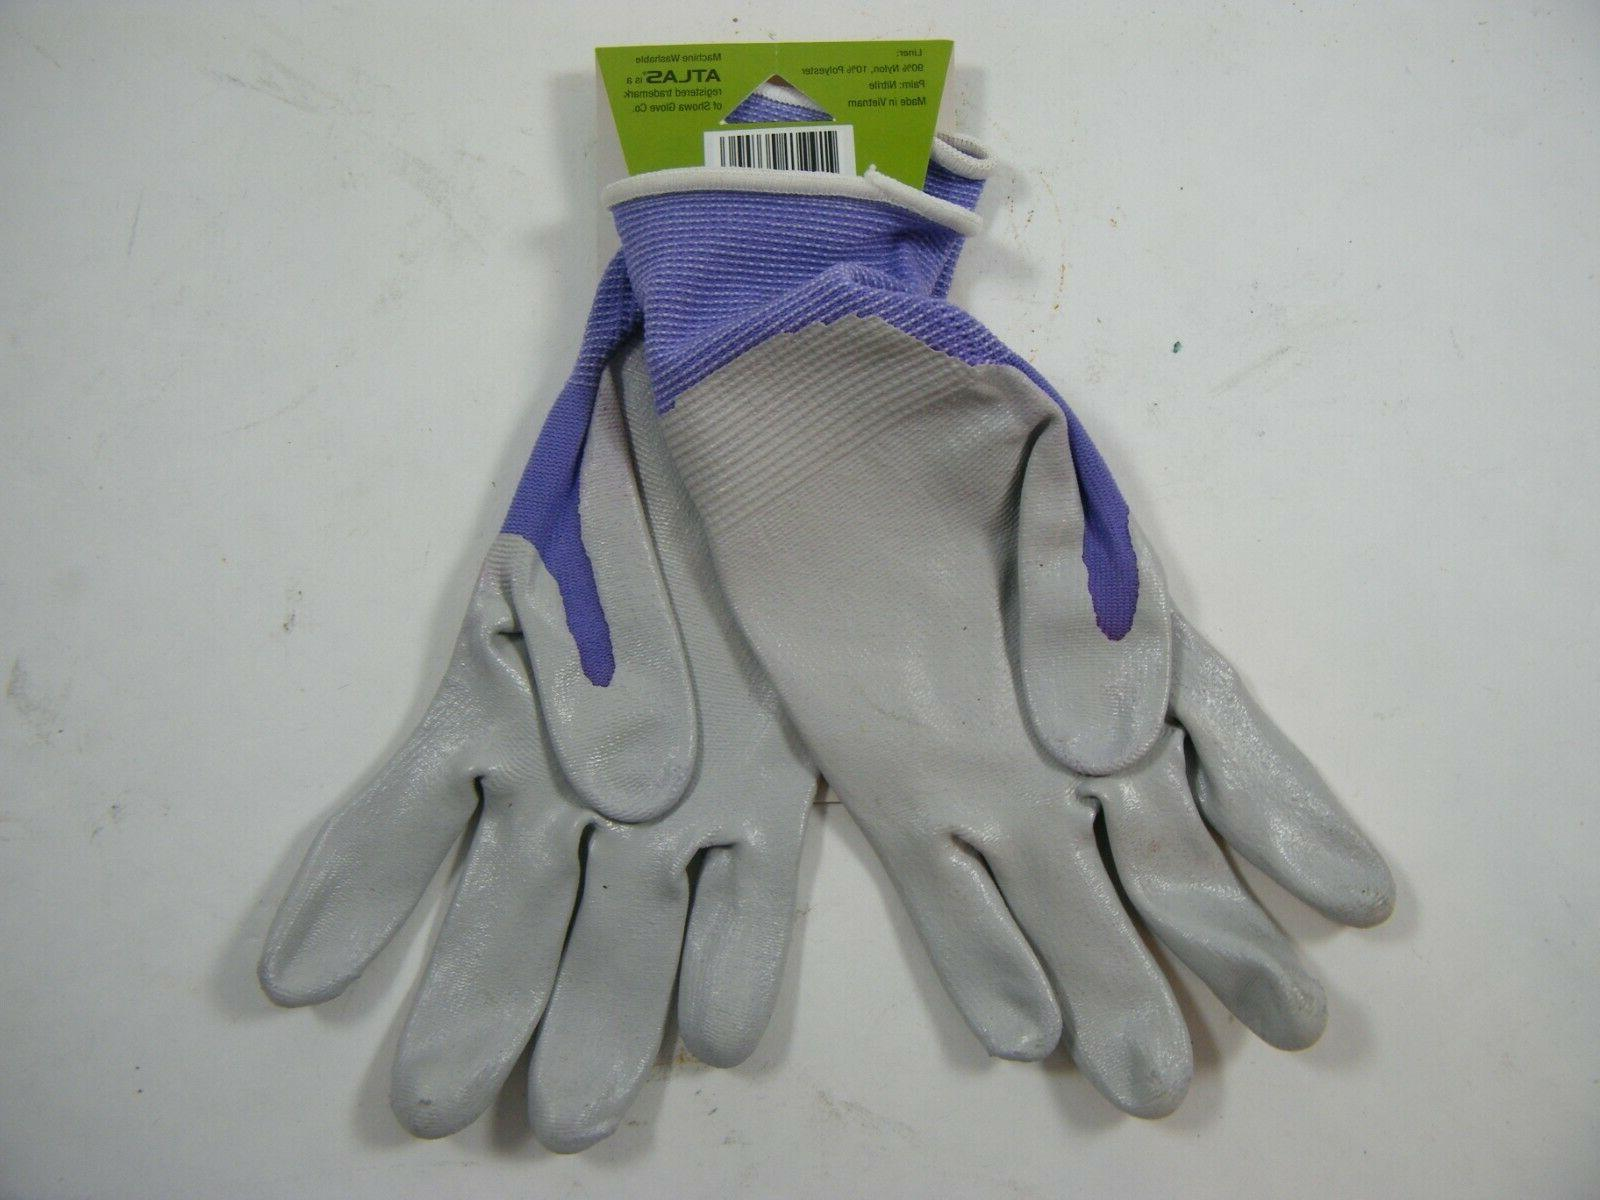 KIDS RUBBER PALMS WORK GLOVES EXTRA SMALL XS PURPLE